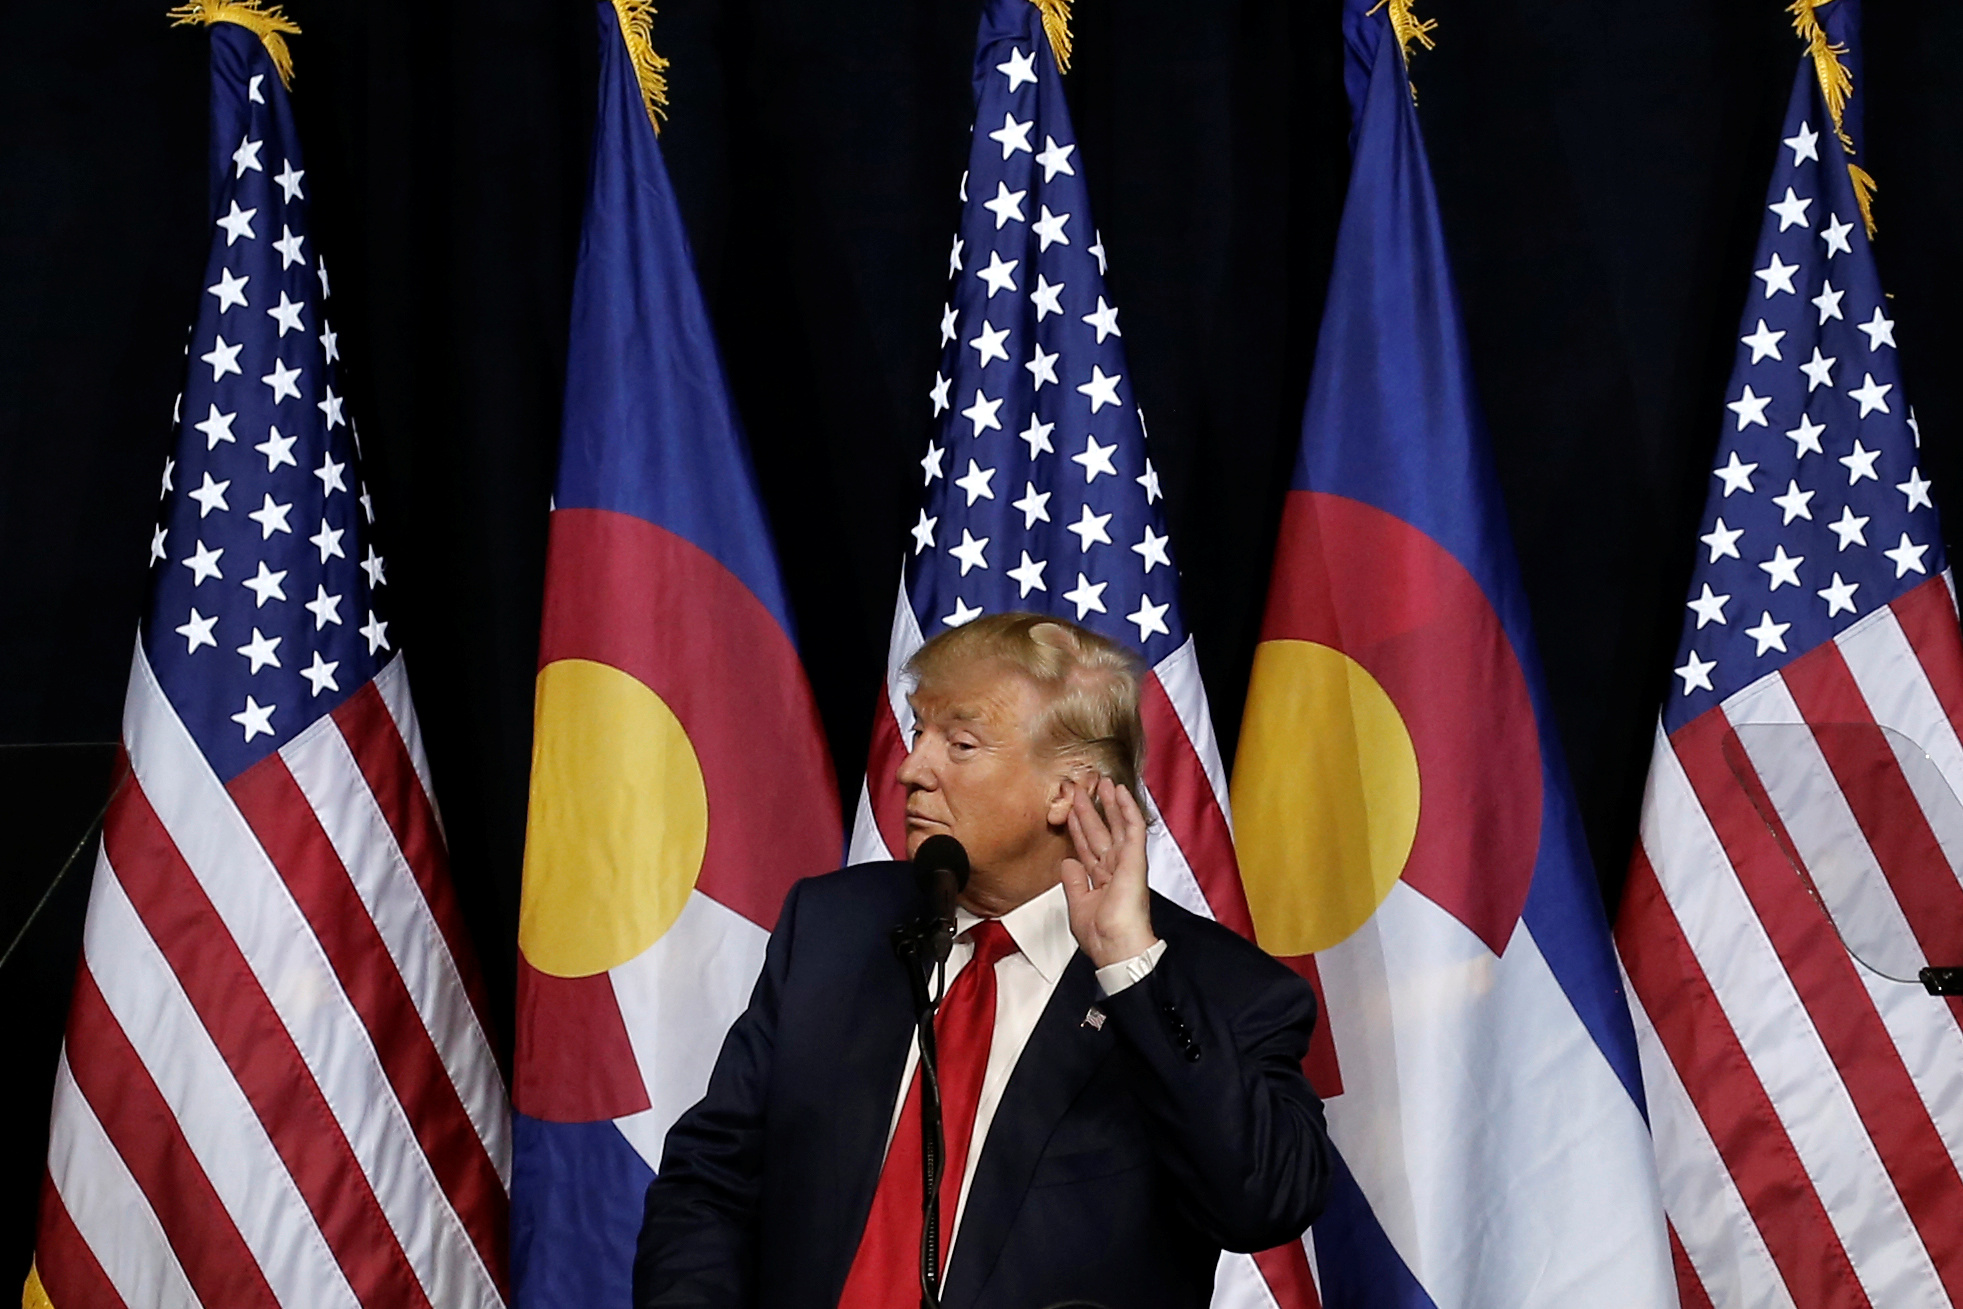 U.S. Republican presidential nominee Donald Trump puts his hand to his ear as he speaks at a campaign rally in Pueblo